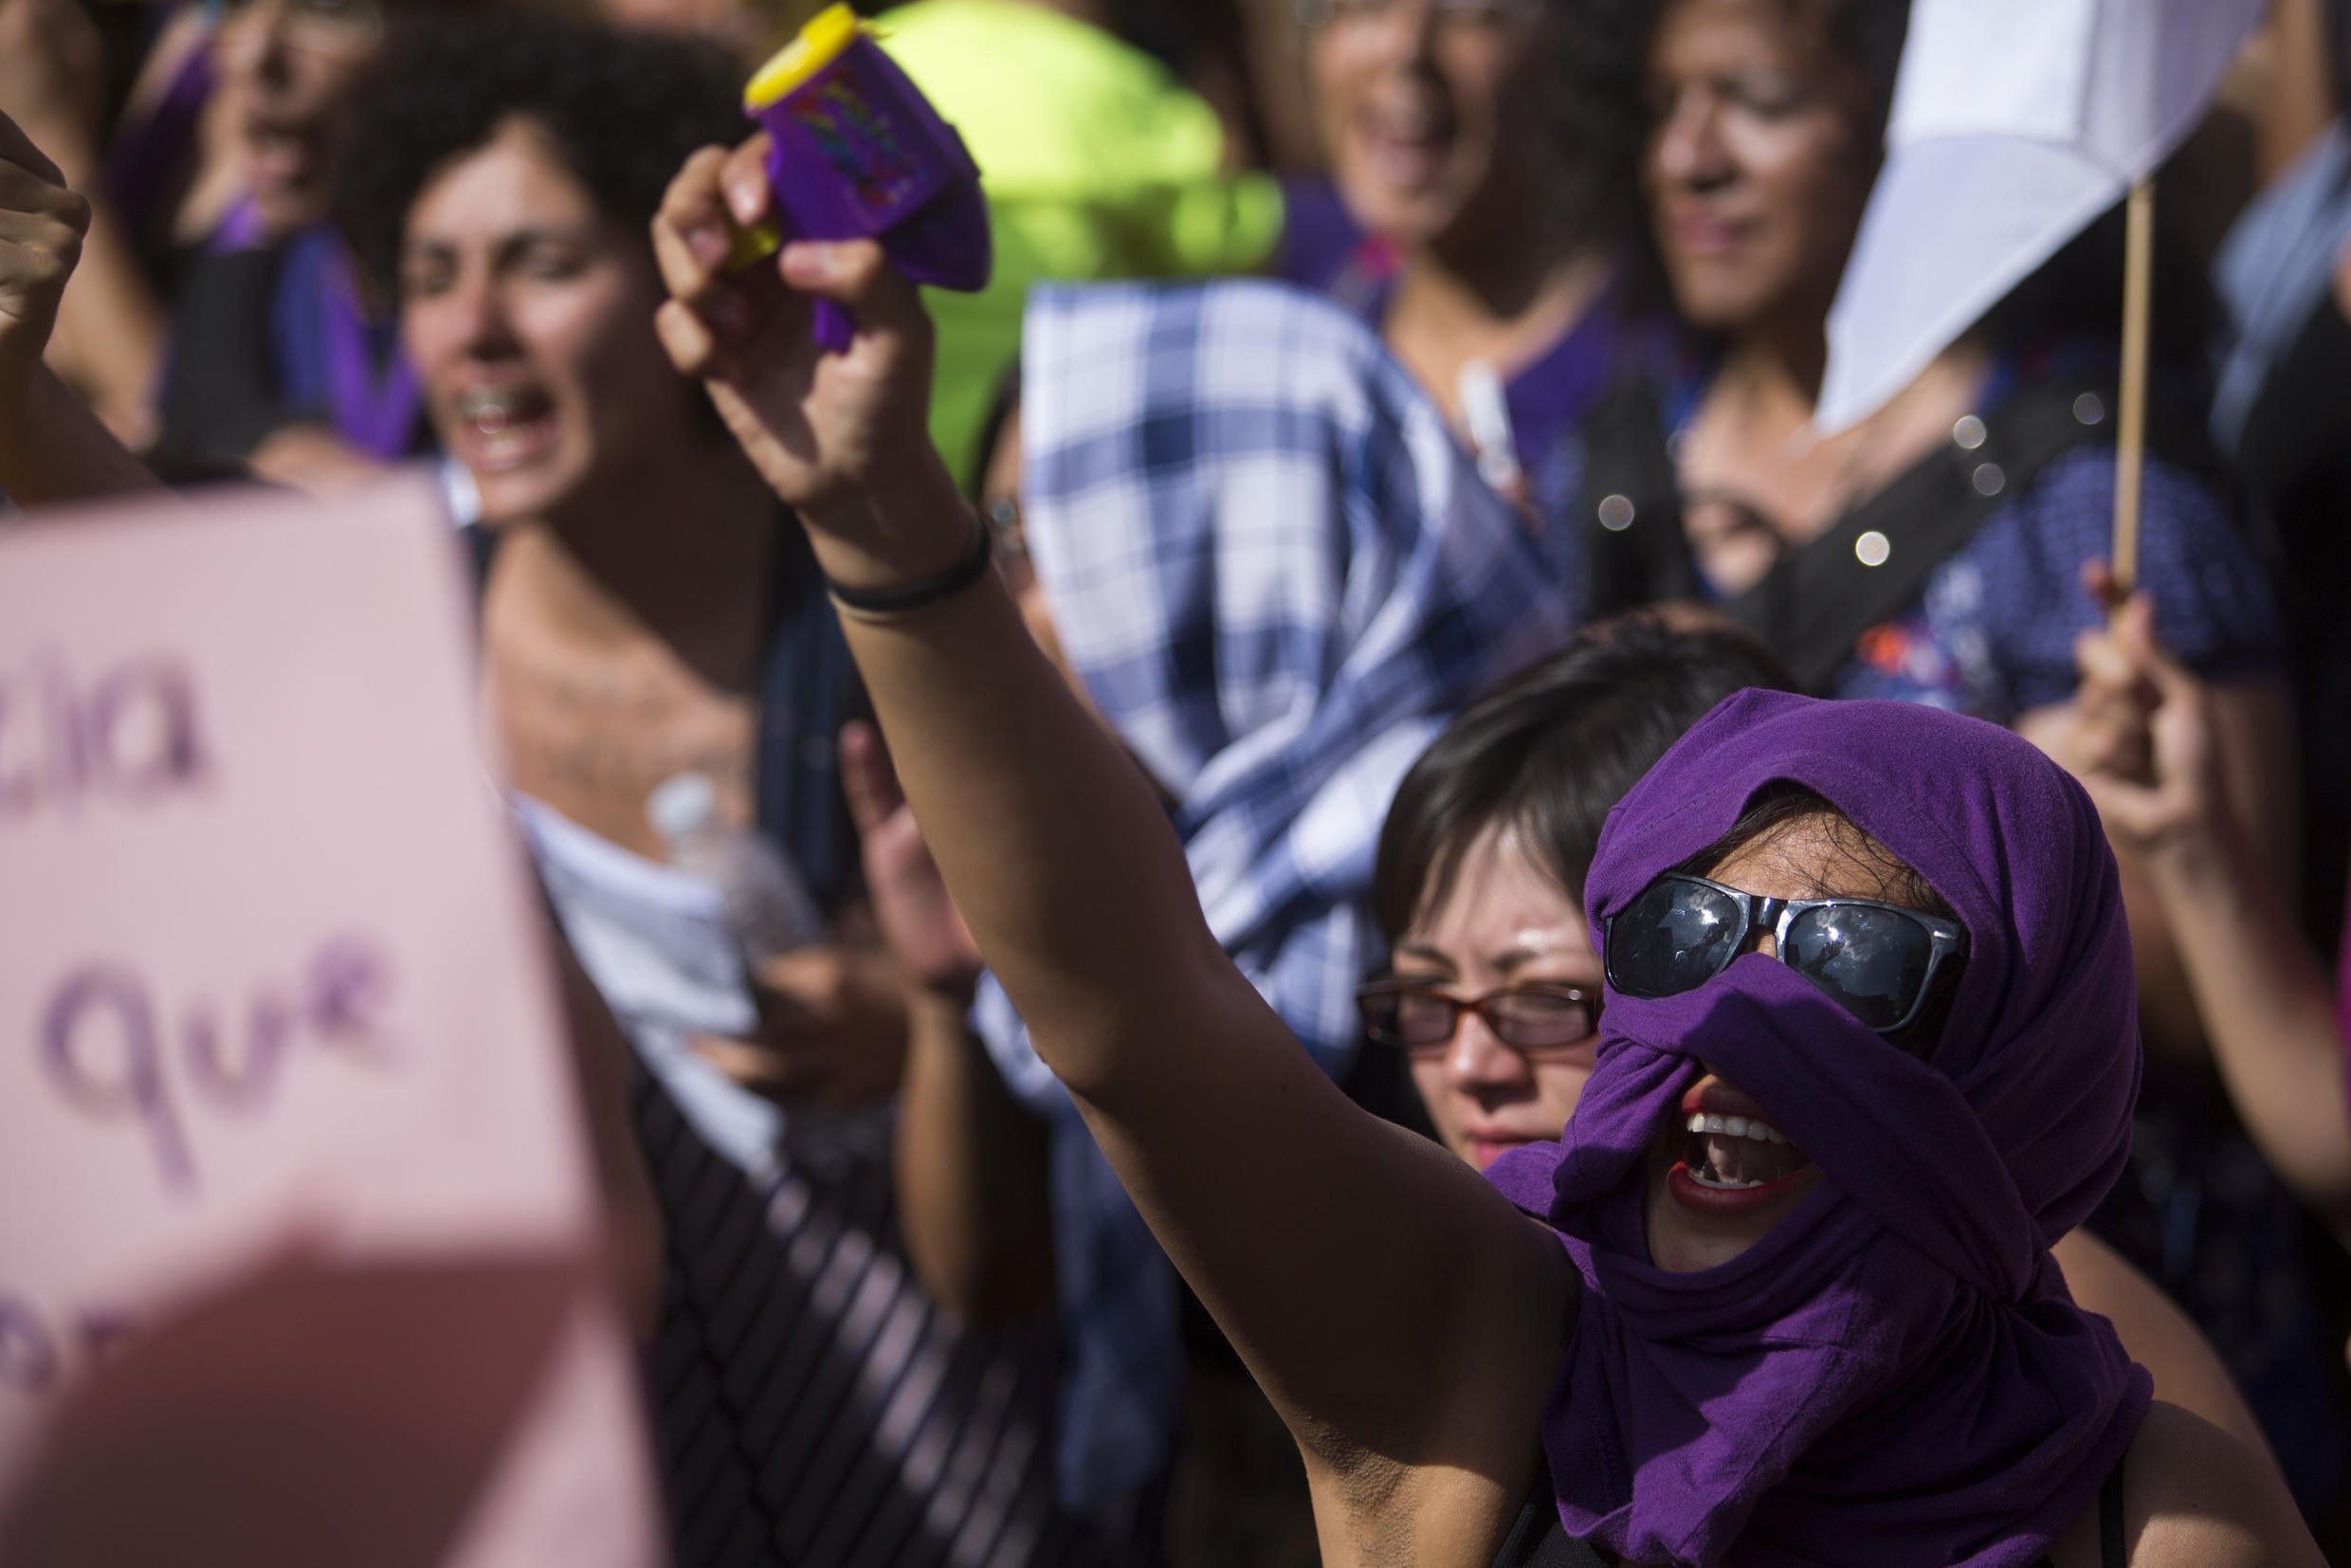 Protest march calling for a halt to violence against women in Mexico in April 2016 pre-#metoo